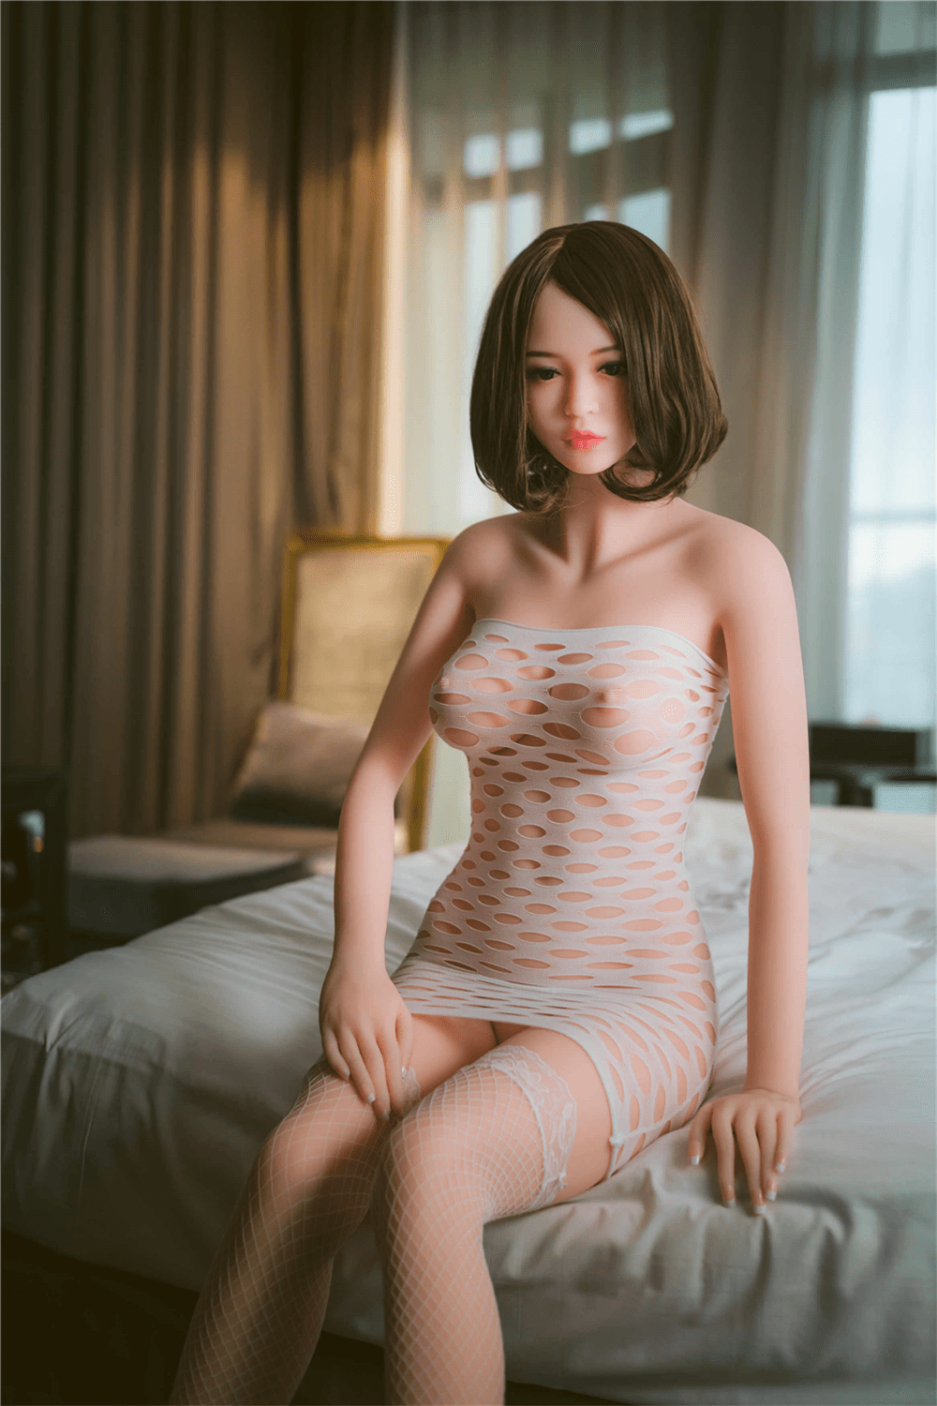 Sex Doll Sitting On The Bed